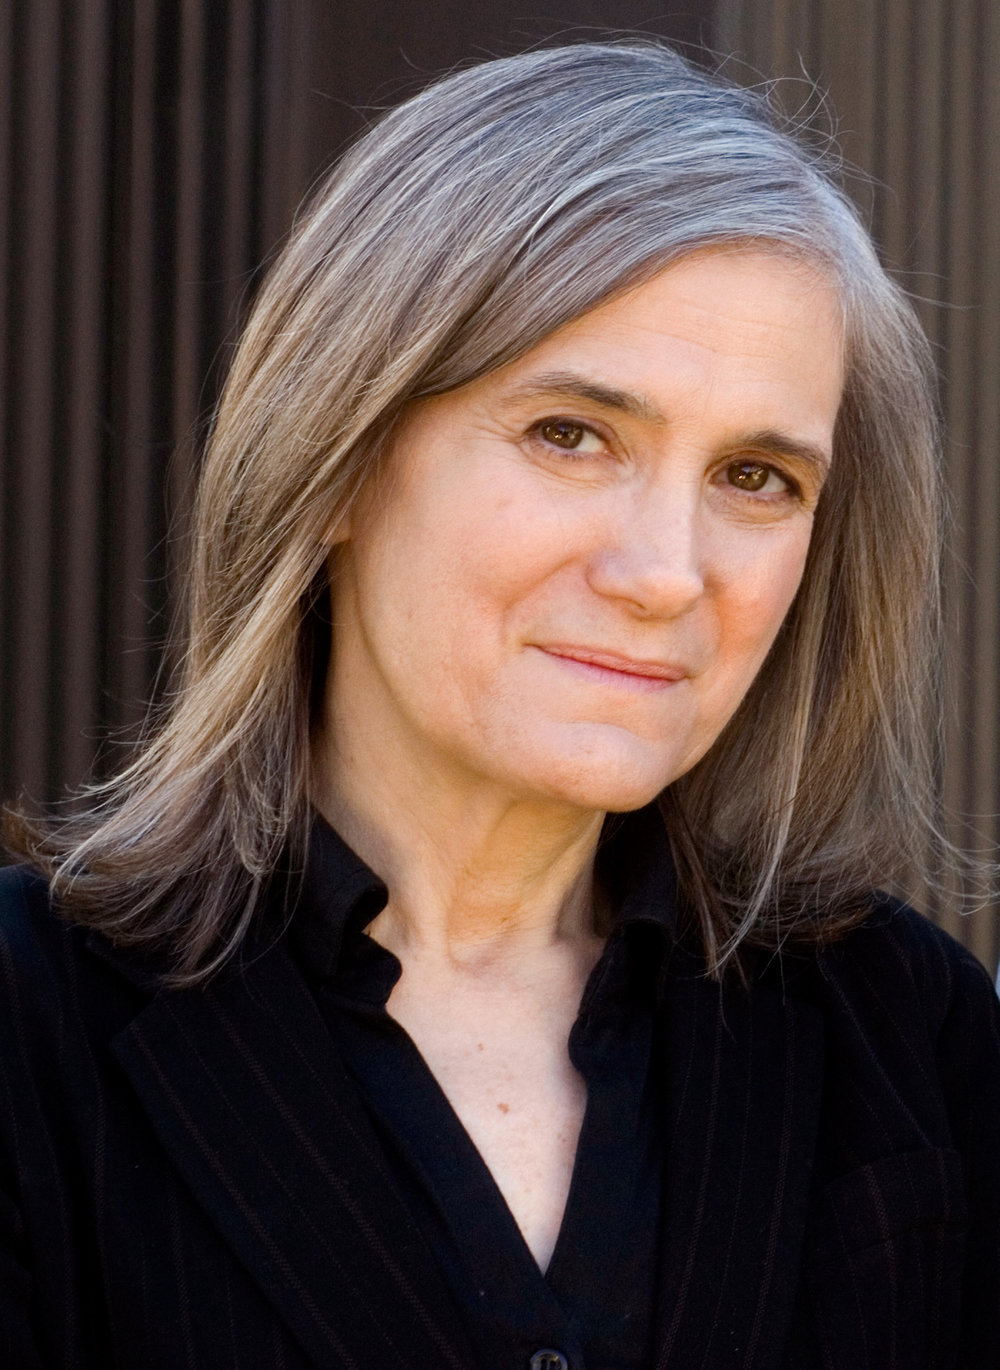 Keynote: Amy Goodman Author investigative journalist and executive producer of Democracy Now